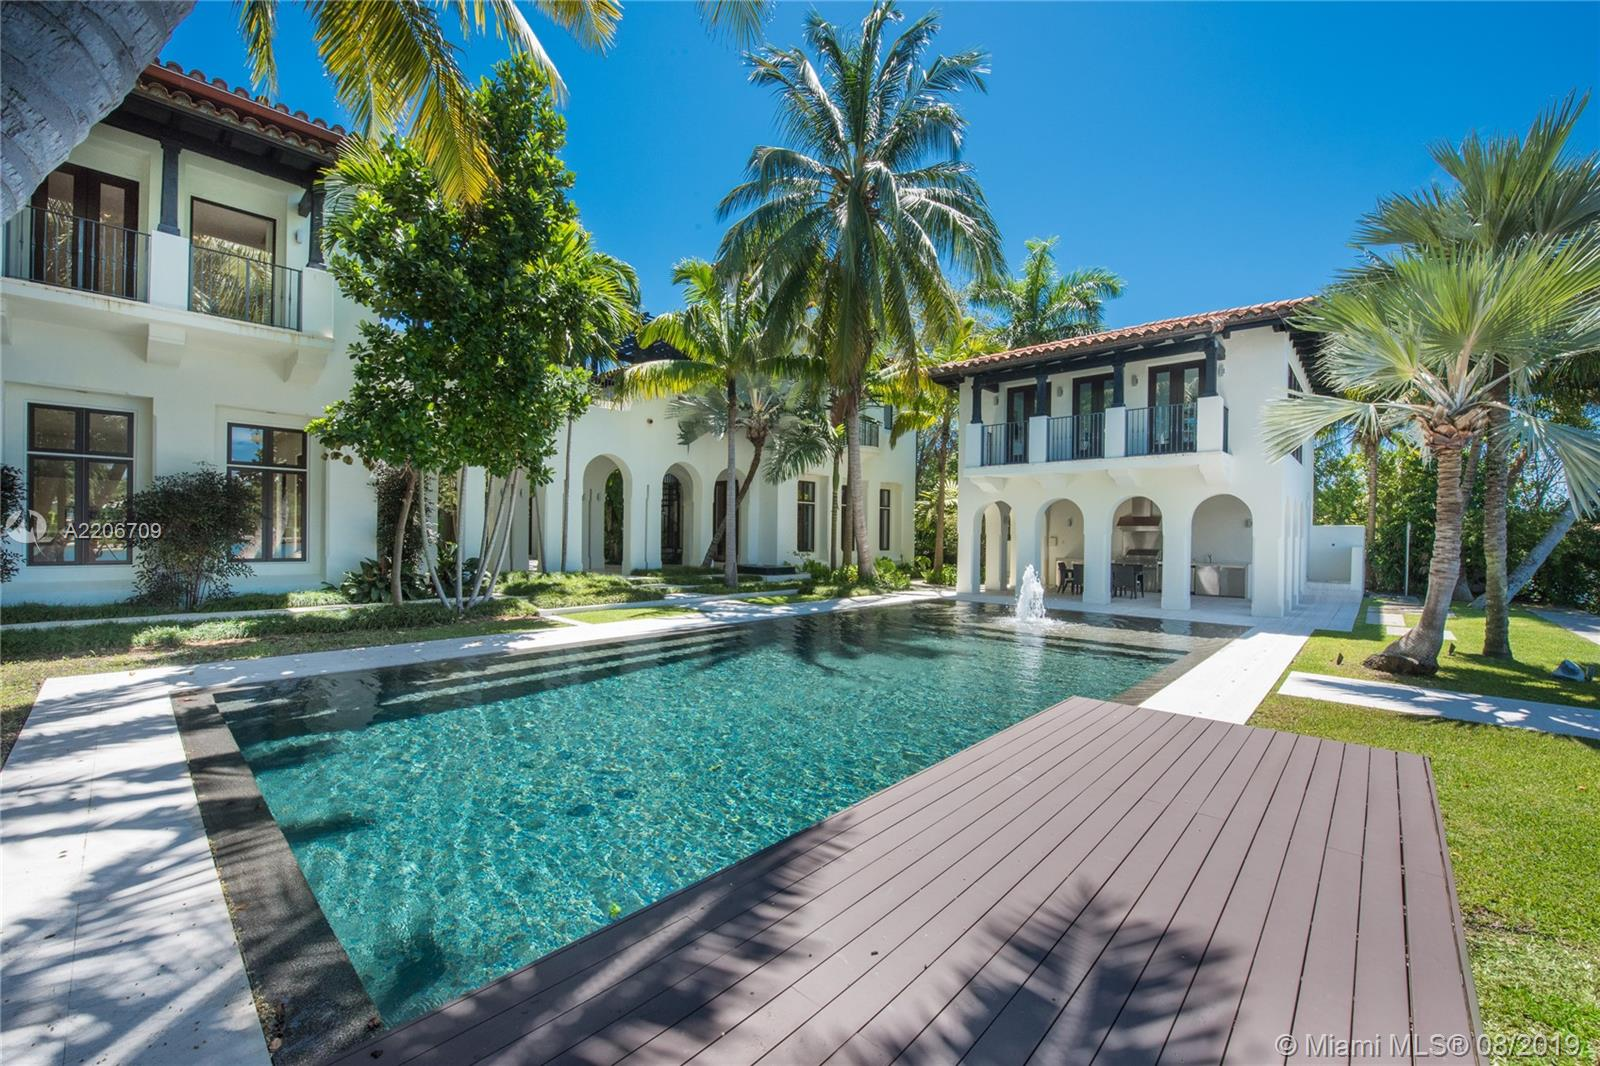 Glorious Waterfront Mansion In The Most Desirable Miami Beach Neighborhood, Lower North Bay Road. Built 2009, This Magnificent Home Offers 14, 647 S.F Of Remarkably Finished Living Areas Featuring 12-Foot Ceilings Throughout, Beautiful Living Room In-Between 2 Interior Lush Courtyards, Large Family Room With 810-Botle Wine Cellar, Game Room, Formal Dining, & 1, 100 S.F. Ultra-High-End Kitchen By Boffi. On The Second Floor, A Gym, Library, & Spectacular 2, 000+ S.F. Master-Suite With A Seating Lounge, A Wet Bar, & Mega-Size His & Hers Boffi Closets. The Home Is Sited On A Lushly Landscaped 24, 860 S.F. Lot With 125 Feet Of Waterfront, & Comes With A Detached Waterfront Office, Covered Summer Kitchen, 48-Foot Knife-Edge Pool, Dock, 3-Car Garage, Full House Generator, & More.